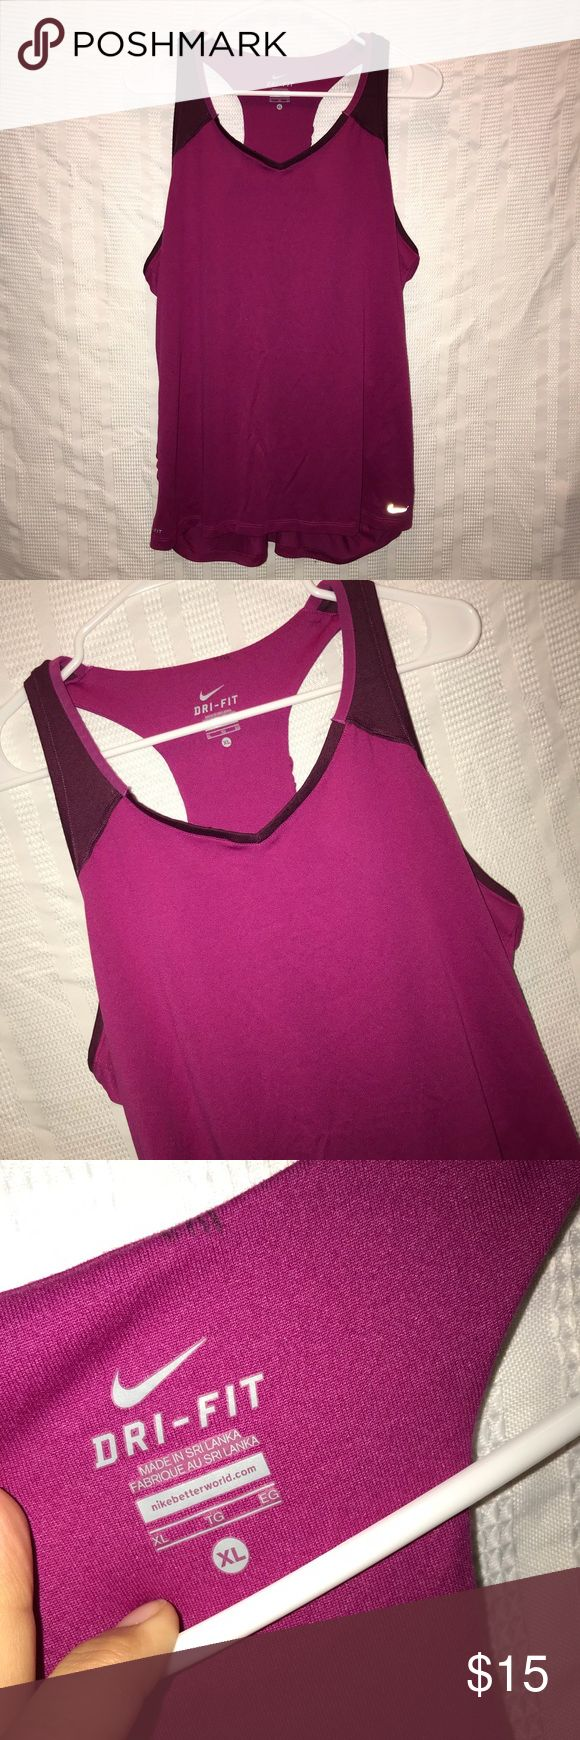 "Nike Dri Fit athletic workout tank top size XL Awesome athletic tank top that has a magenta color and is made from polyester. The top is perfect for working out, running, walking or being at the gym. It had been worn before and is still in excellent condition. The chest measurement is 42"", the shirt length is 27.5"" Nike Tops Tank Tops"